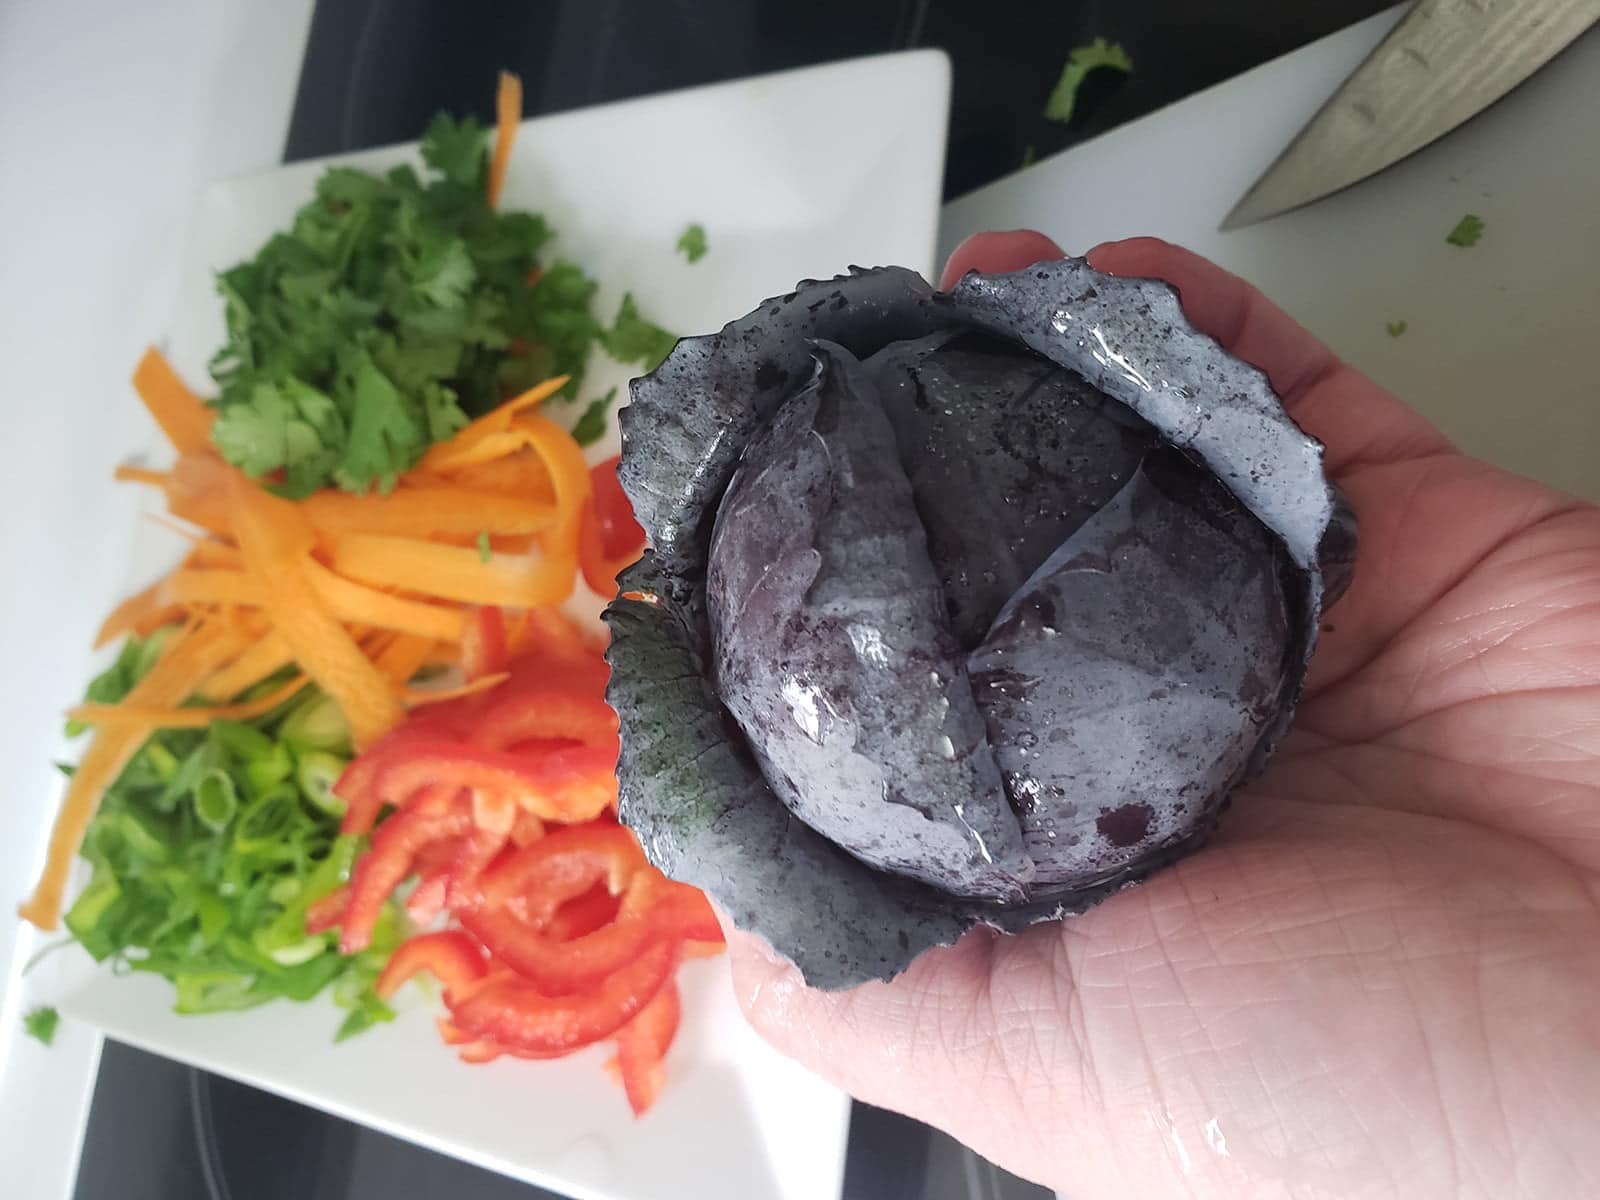 A hand holds a very small head of purple cabbage. In the background is a plate of prepared veggies: thinly sliced red pepper, ribbons of carrots, sliced green onions, and chopped cilantro.